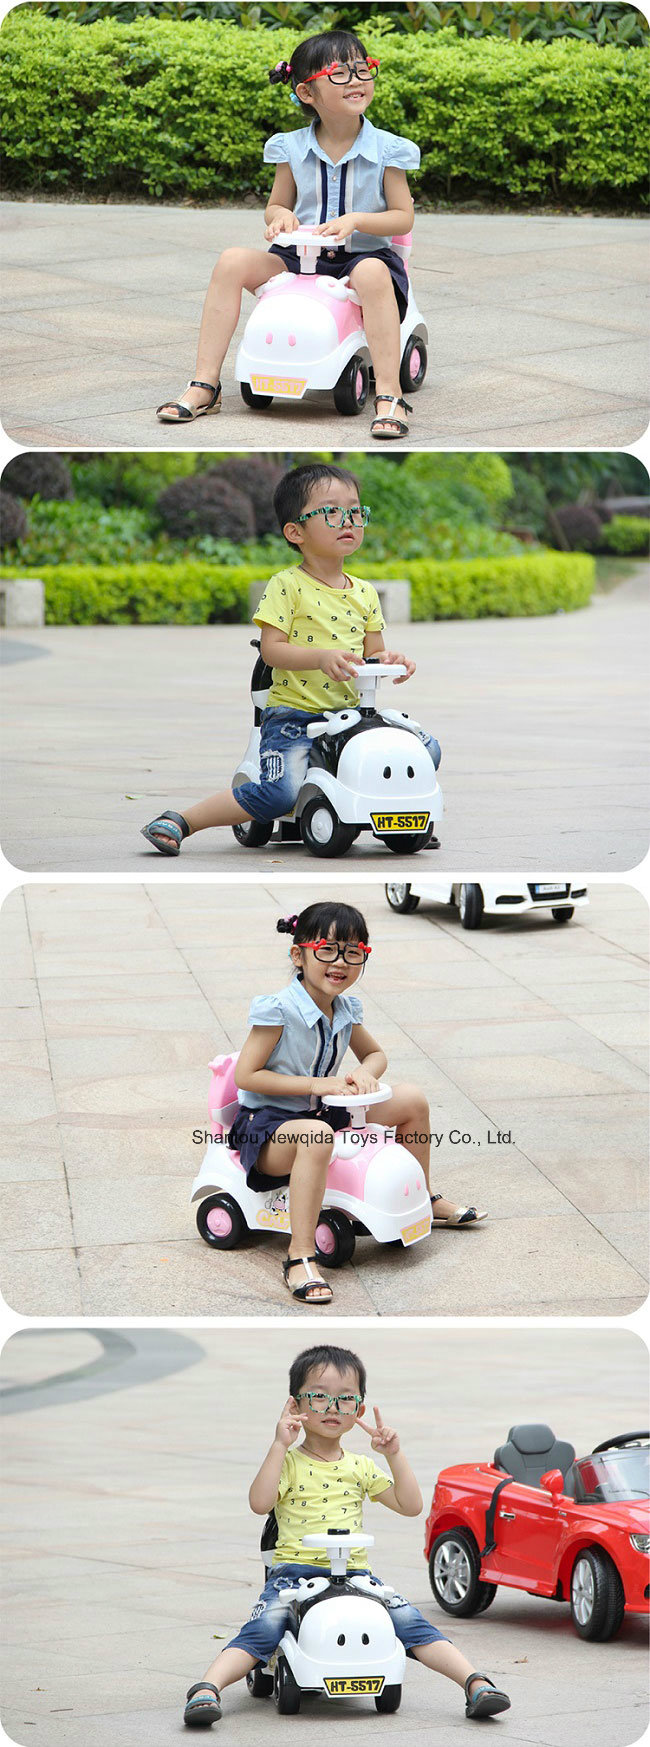 En71 Plastic Scooter Swing Car for Girls and Boys Kids Toy